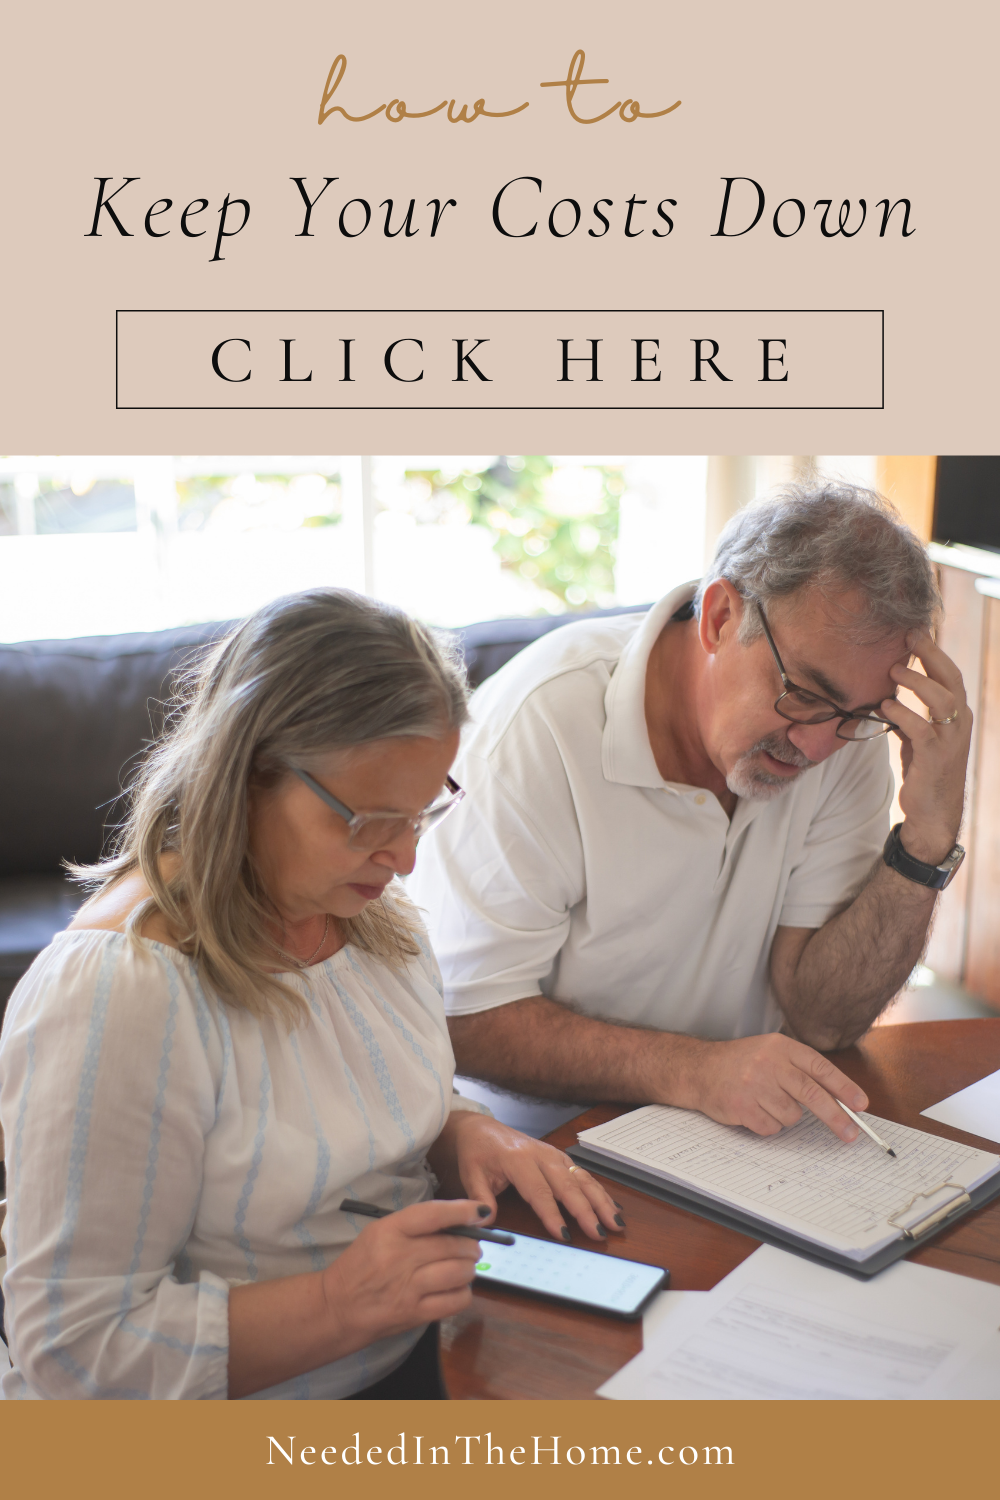 pinterest-pin-description how to keep your costs down click here button middle age couple looking at bills invoices budget at table smartphone ledger neededinthehome